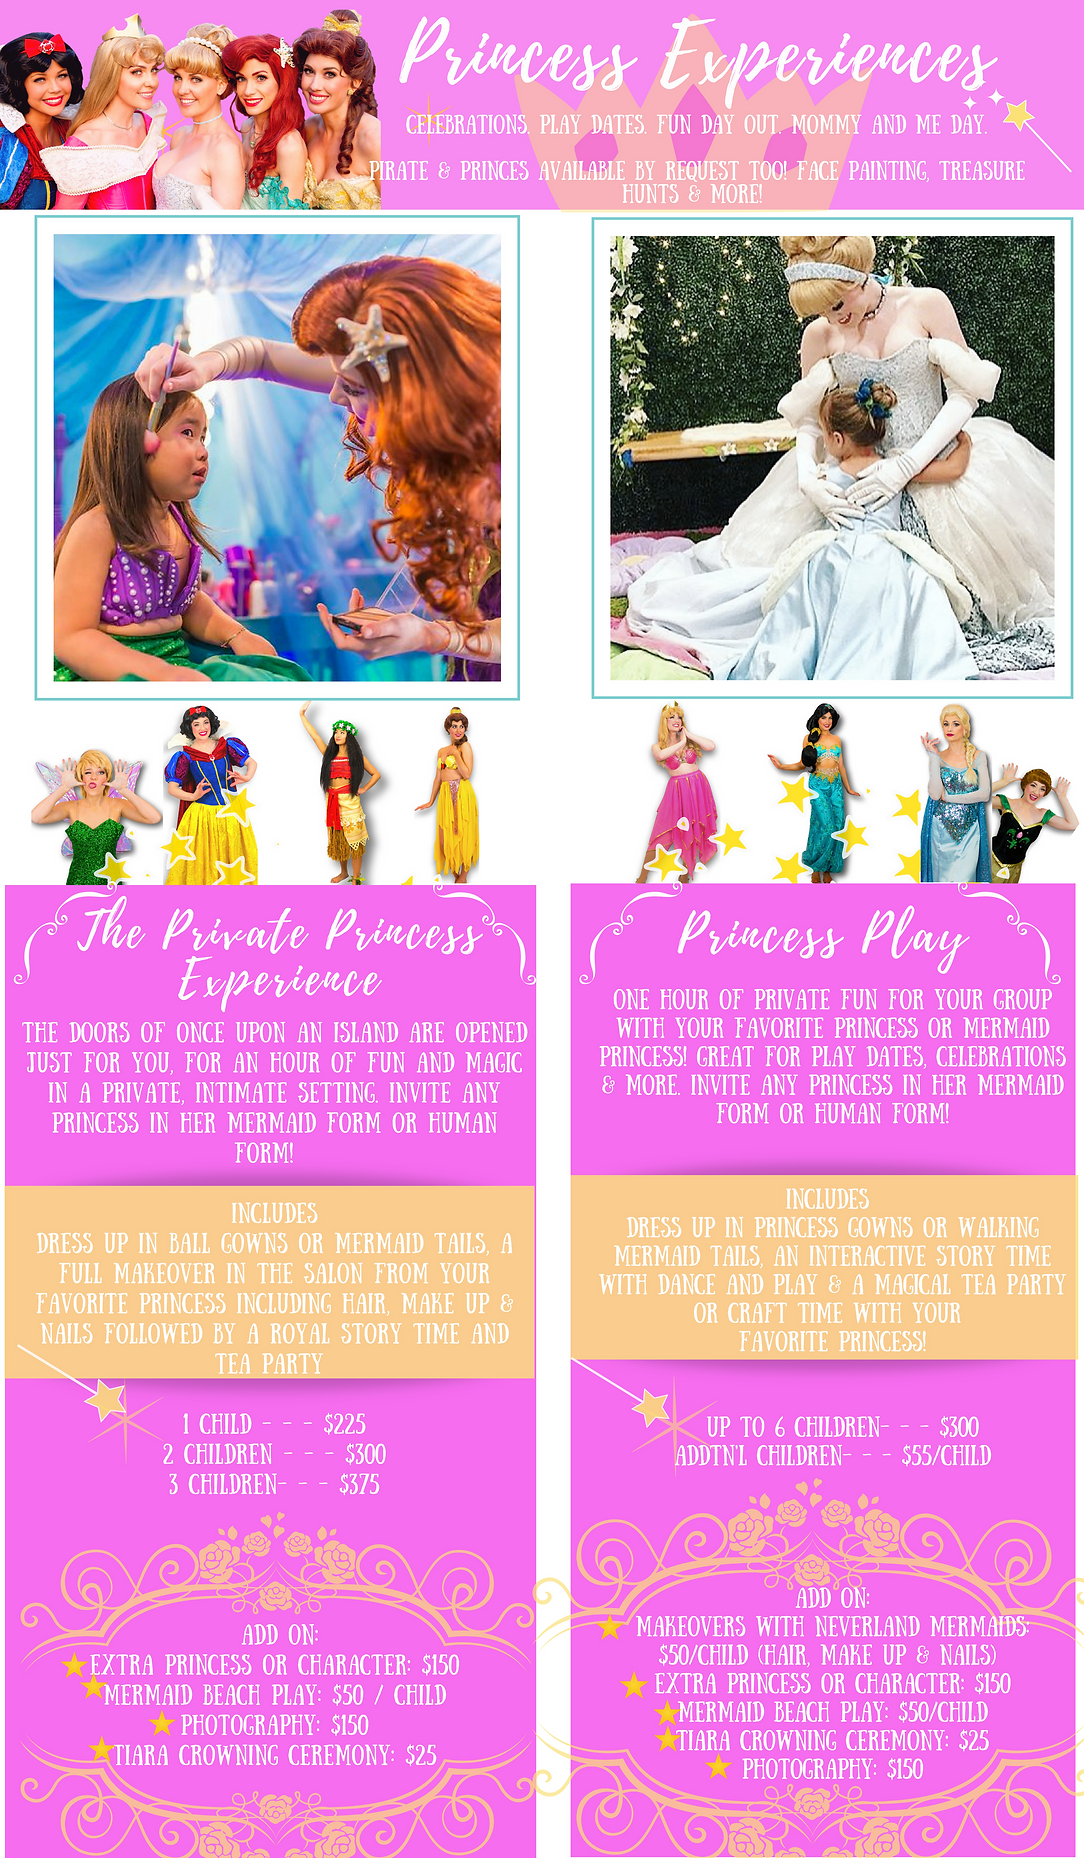 girls birthday party venue, orange county, oc, southern california, tea party venue, kids birthday party venues, girl salon, tea party, mermaid party, princess part, princess character for hire, hire a party princess, birthday party princess character orange county, oc princess parties, princess tea party venue